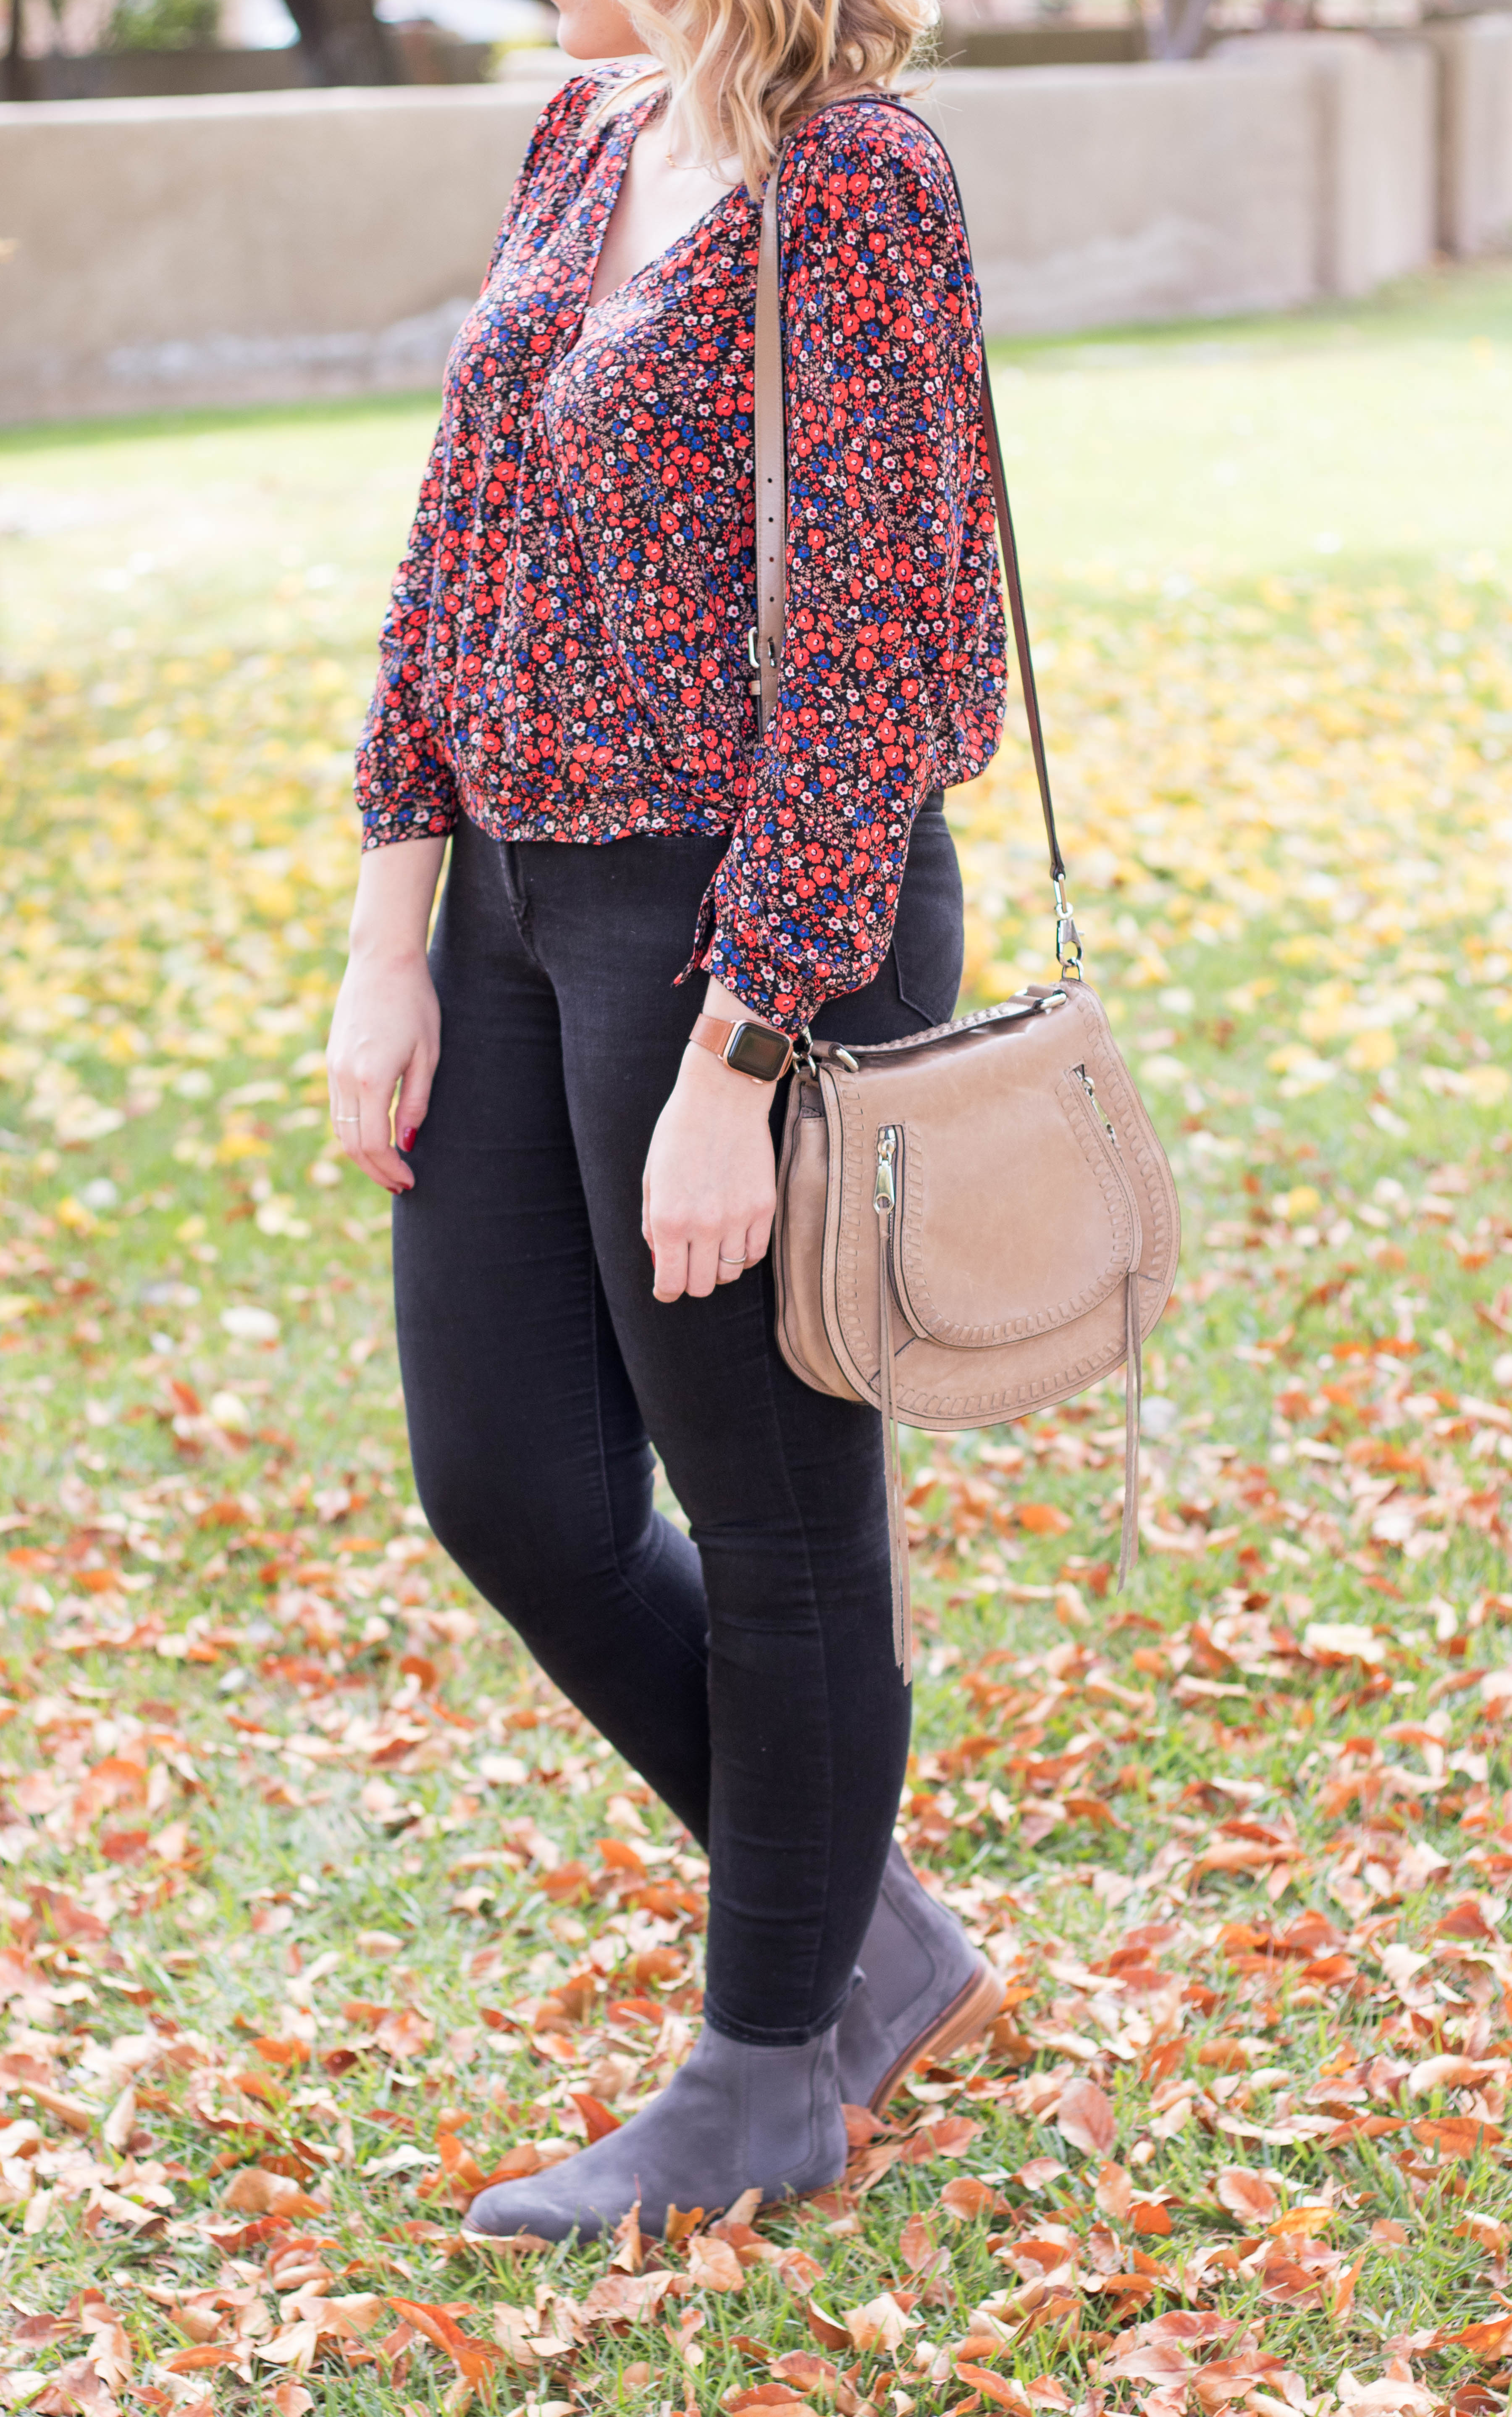 casual fall outfit #fallstyle #falloutfit #ankleboots #tallfashion